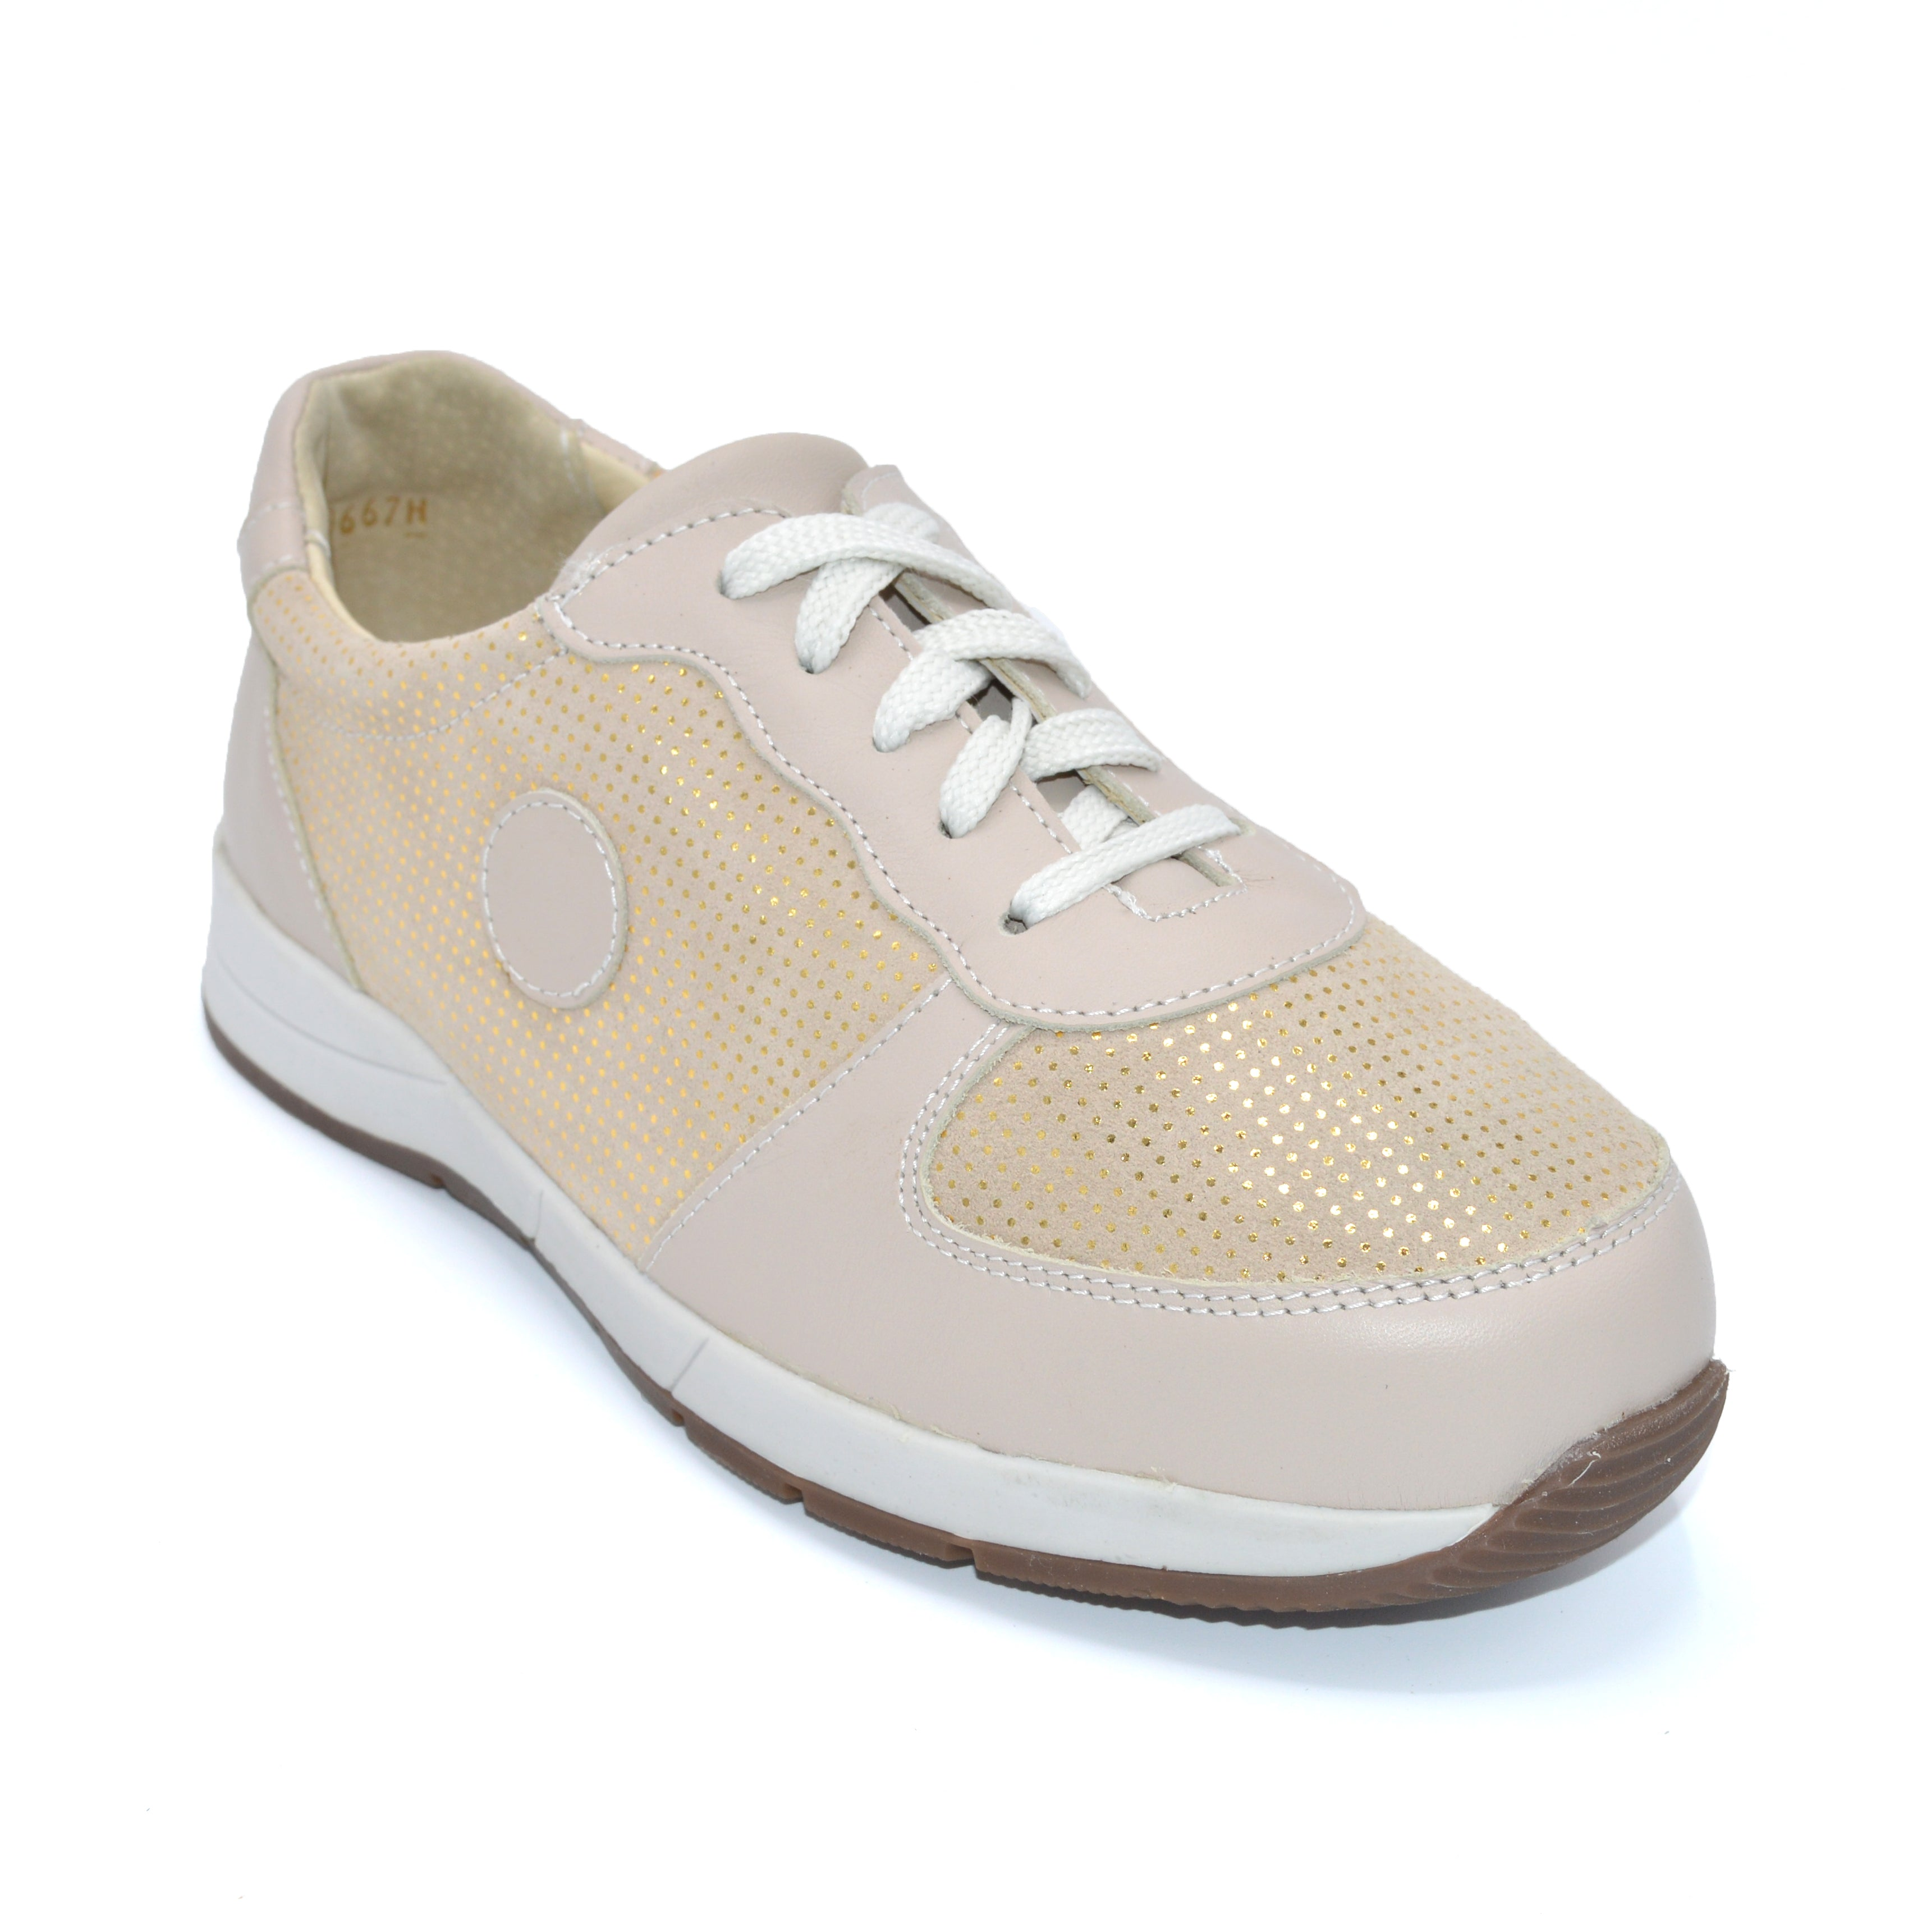 Beige Ladies Wider Fit Trainers For Bunions